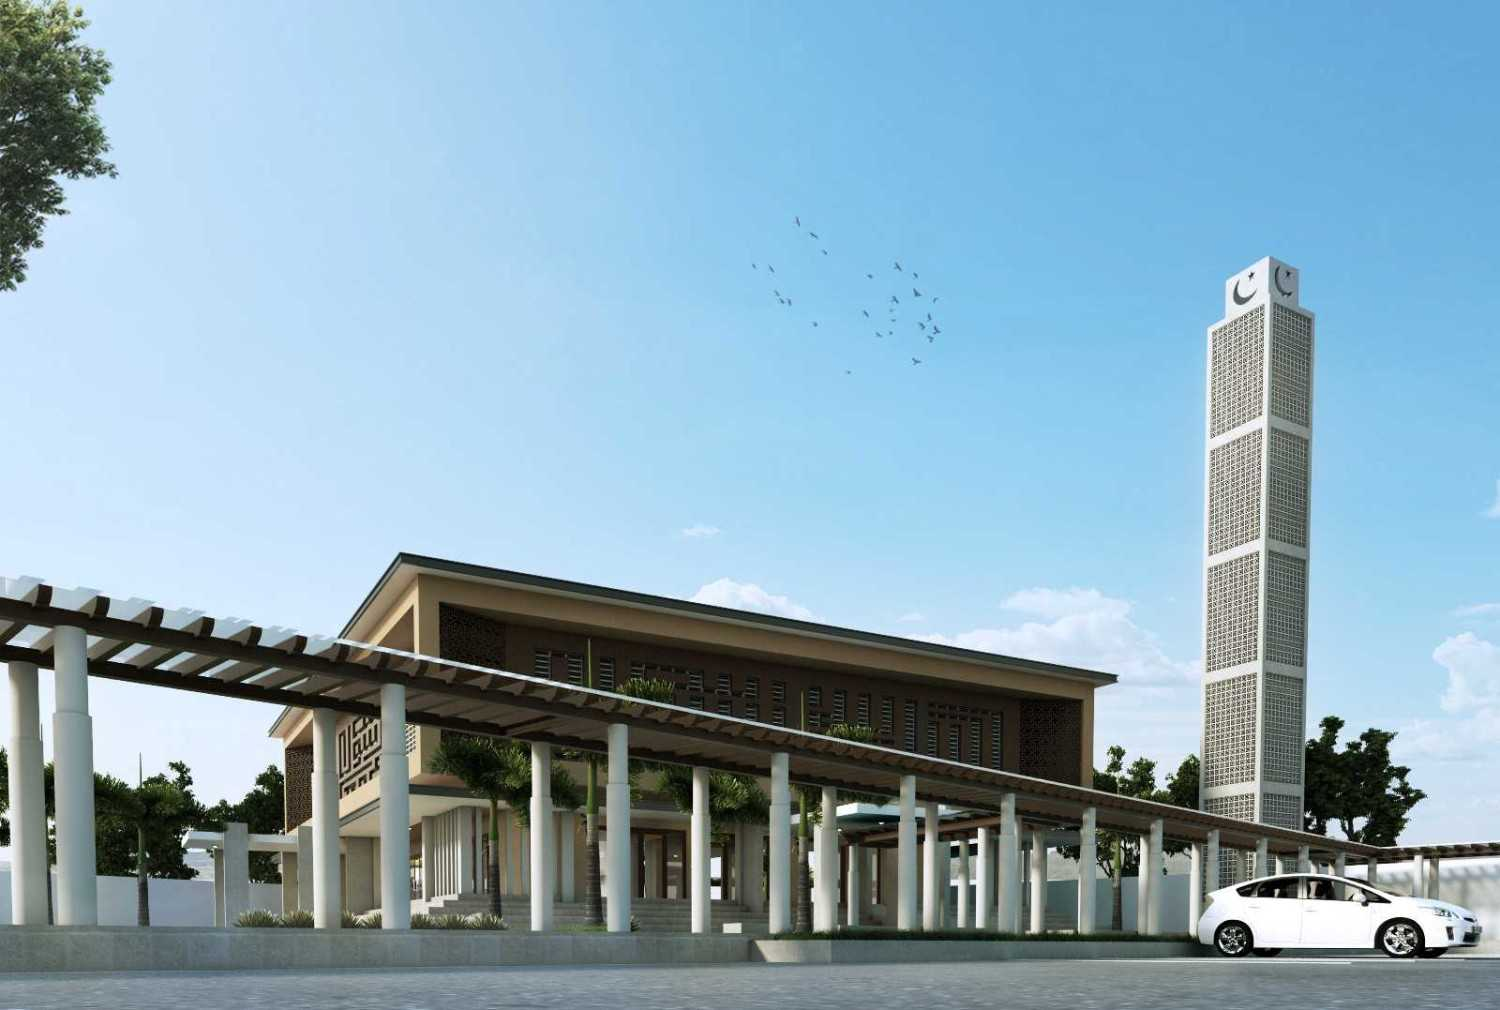 Arsatama Architect Pcnu Office  - Cilacap Cilacap, Central Java Cilacap, Central Java Masjid-2-Pcnucilacap  27045